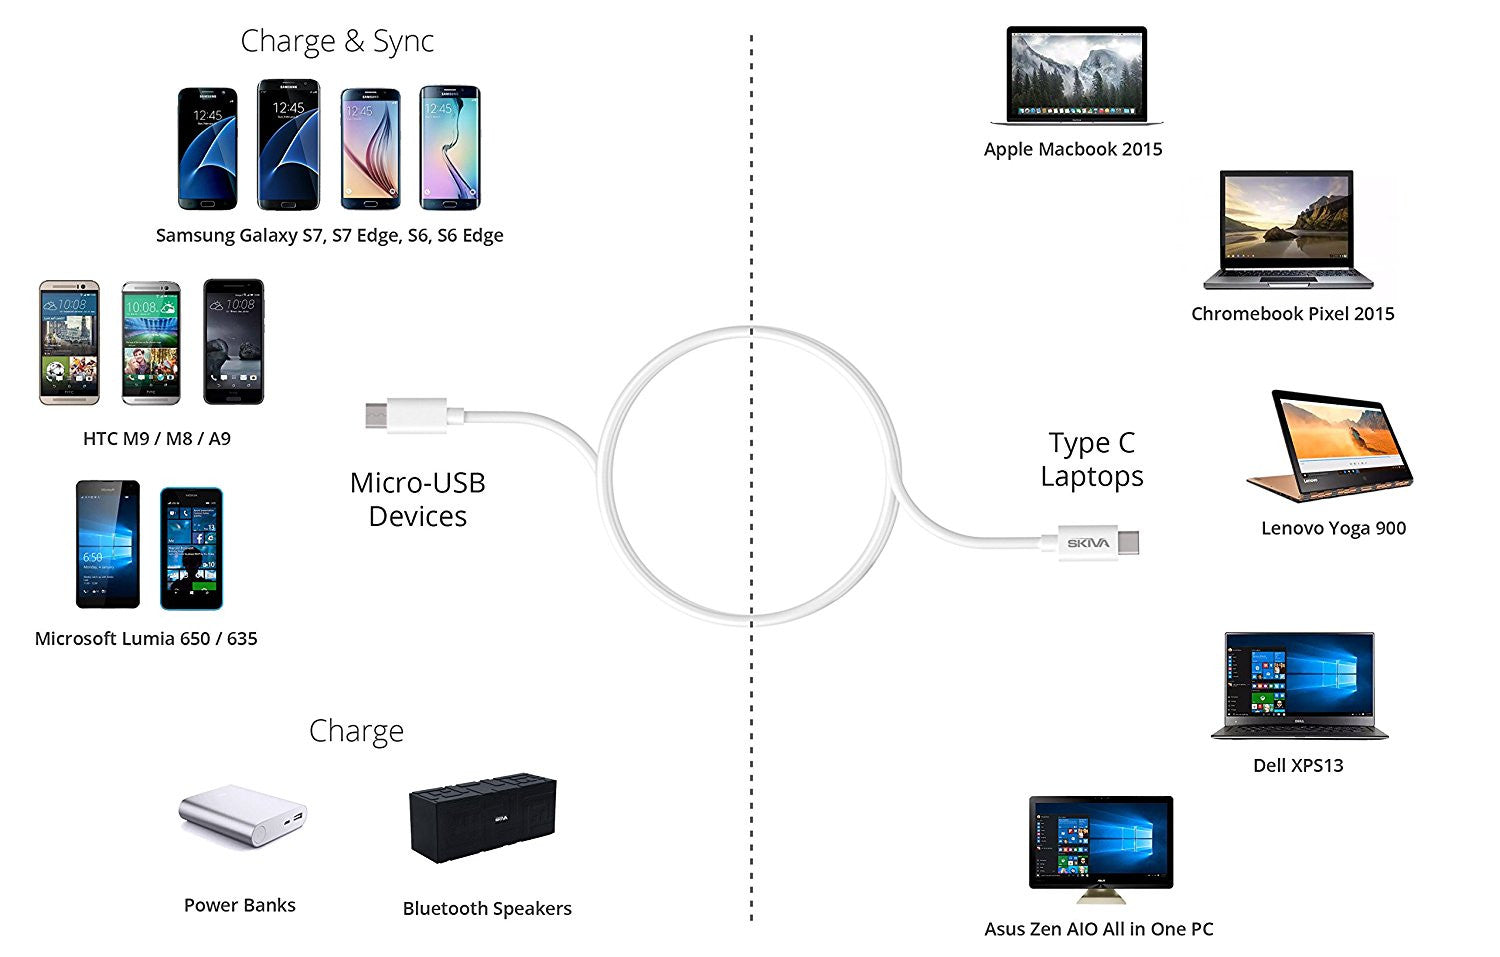 Hp Pavilion Usb Port Diagram Electrical Wiring Diagrams Skiva C To Micro Cable 3 2ft For Type Devices Includin G62 Ports